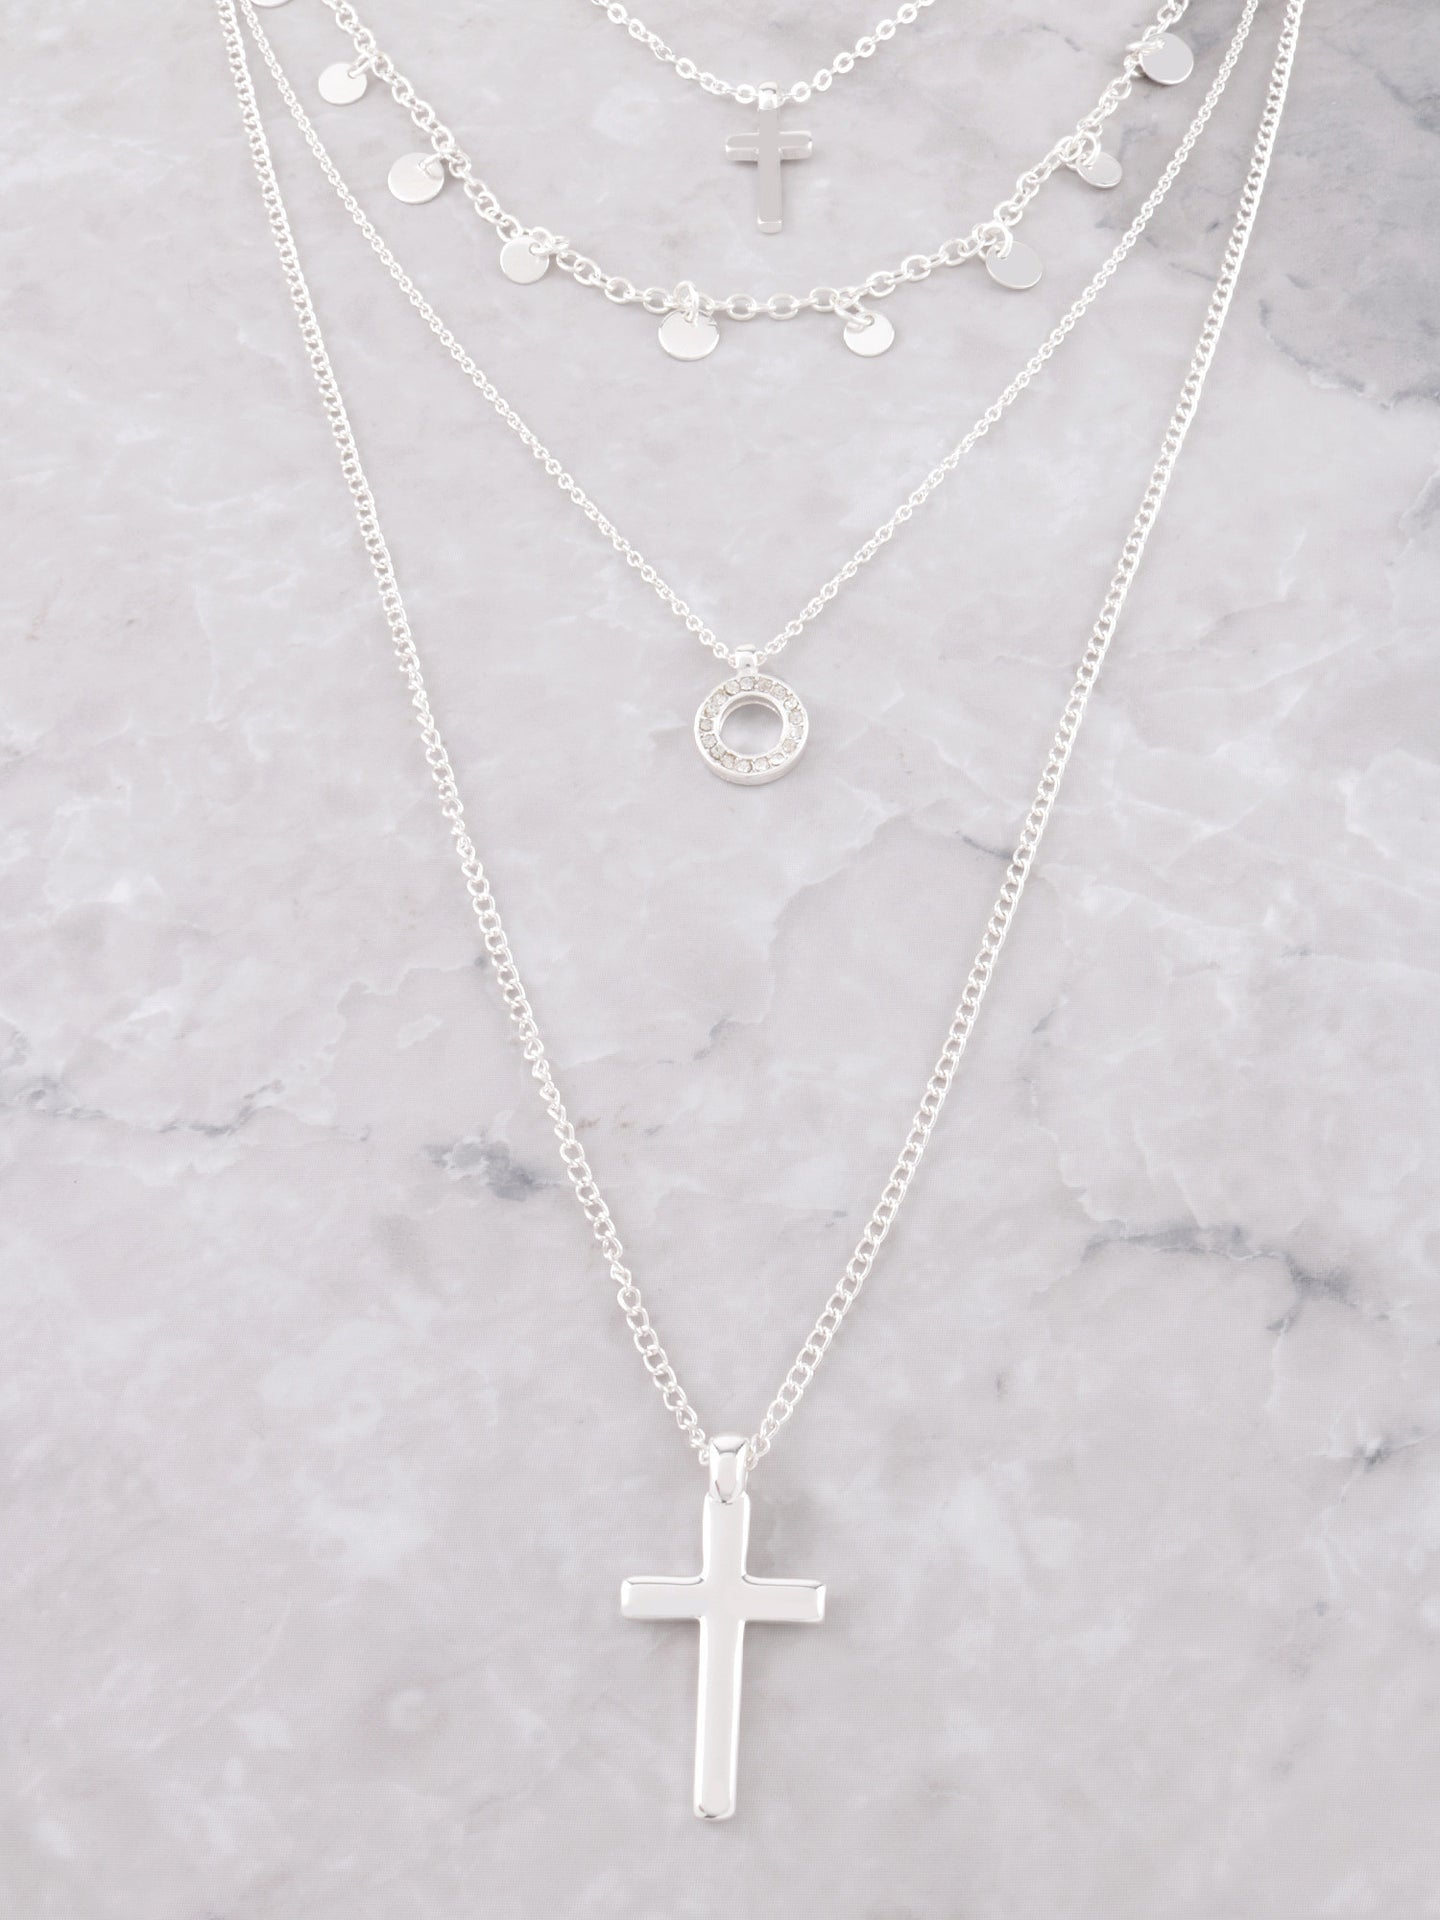 Blessed Layered Choker Anarchy Street Silver - Details